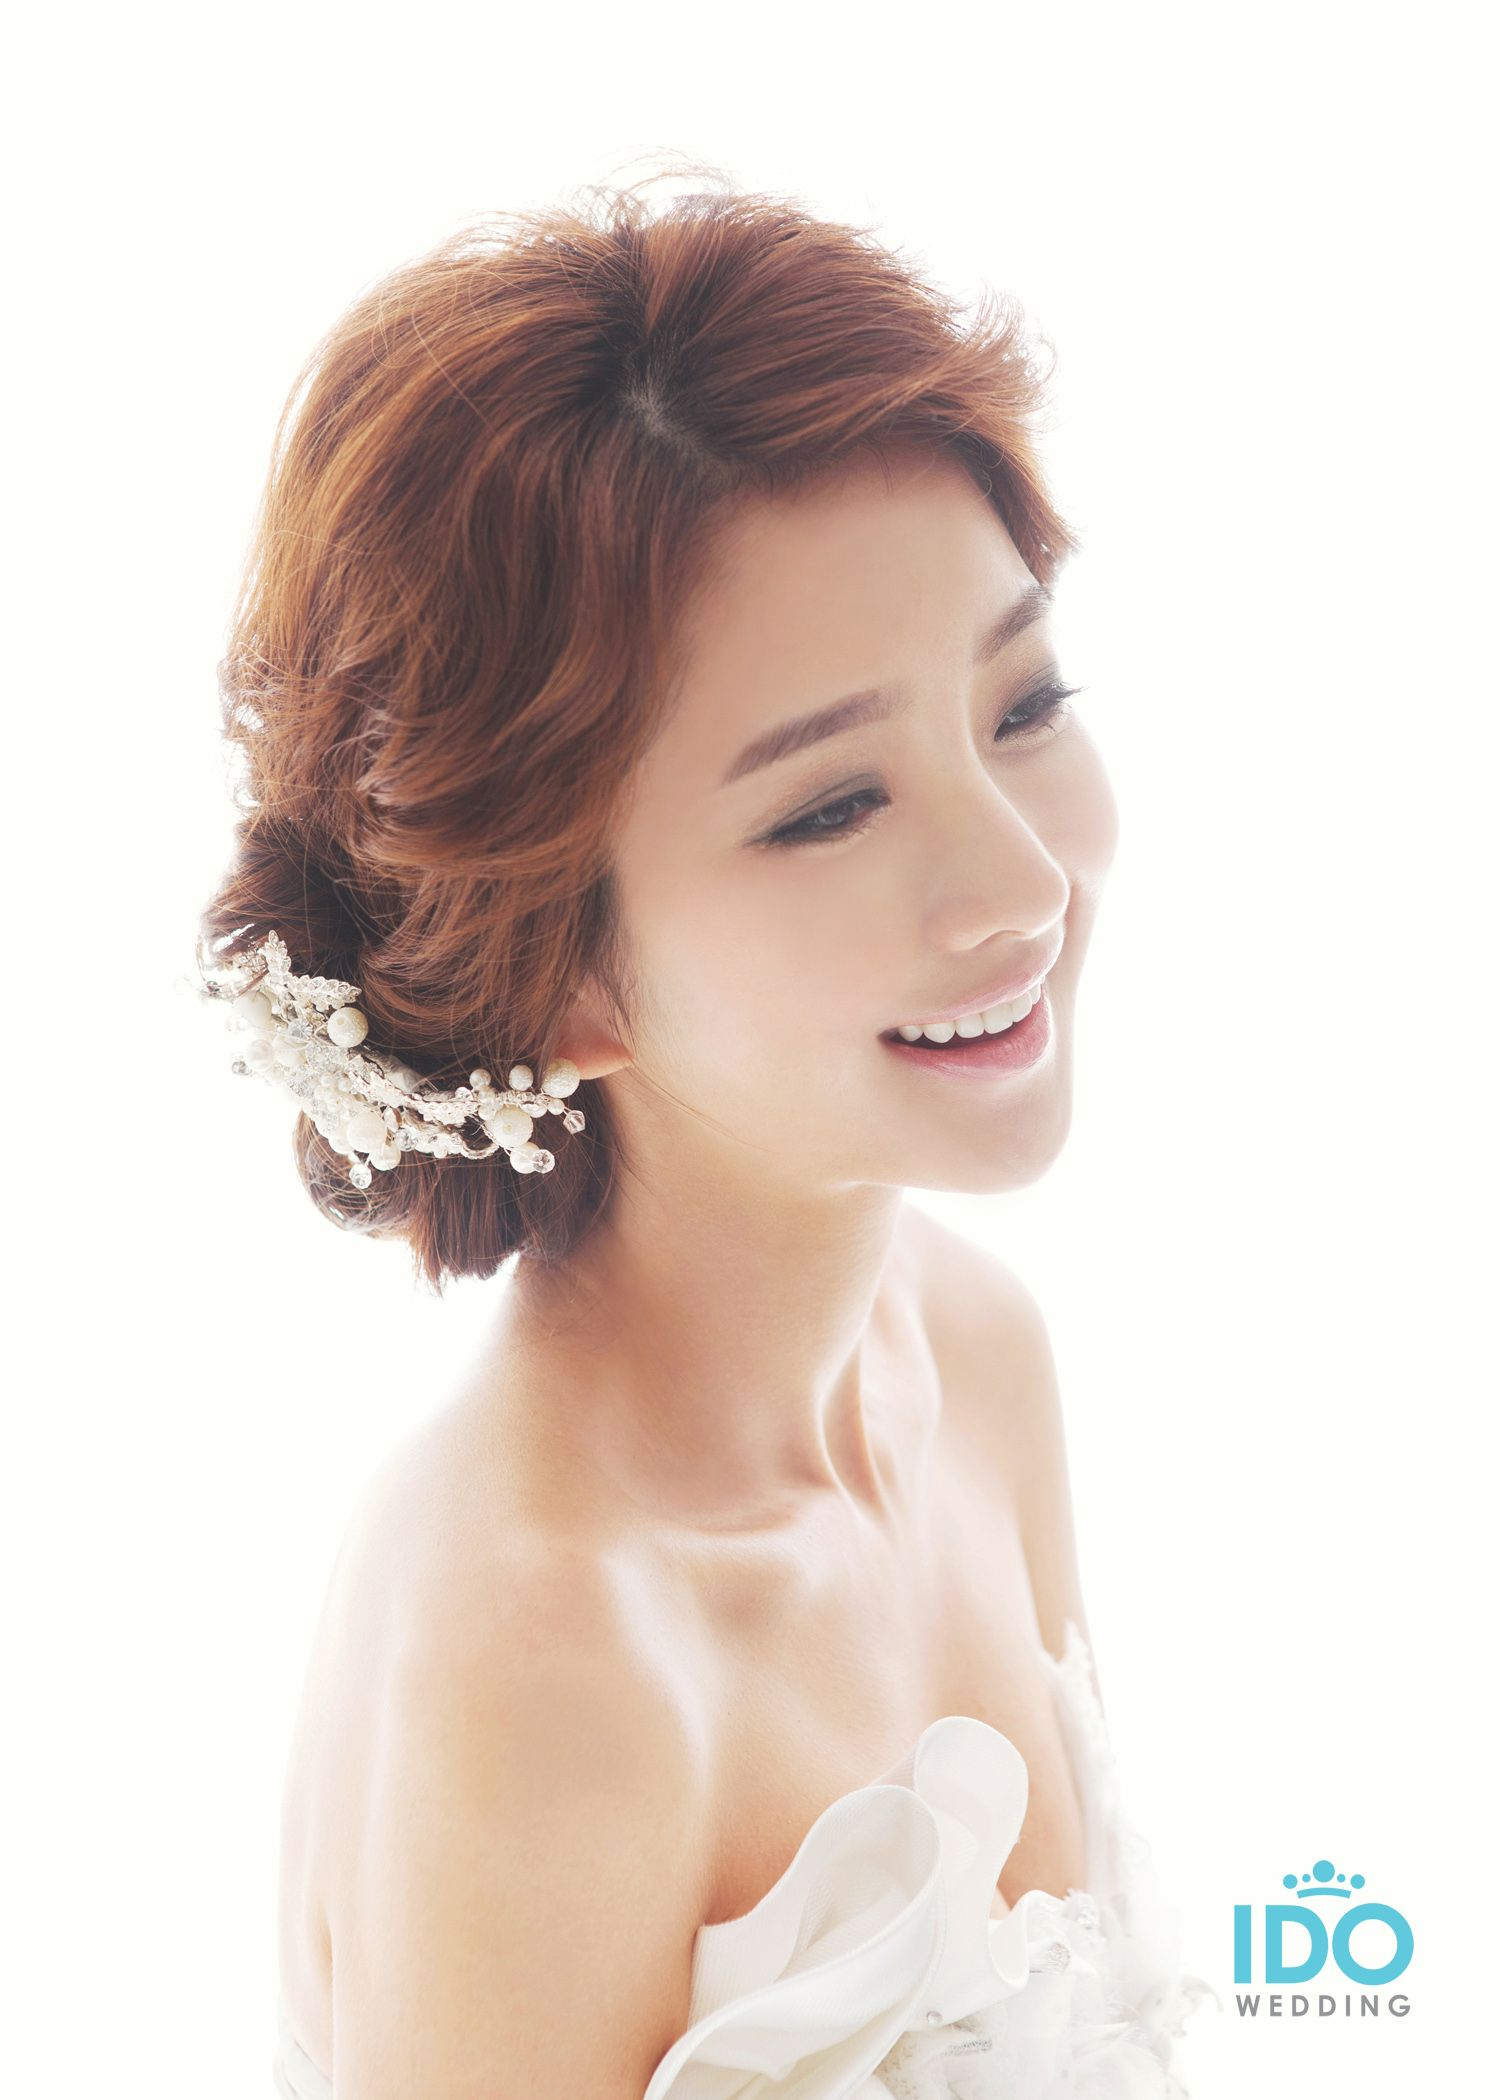 Korean Wedding Photo €� Hair & Makeup Style